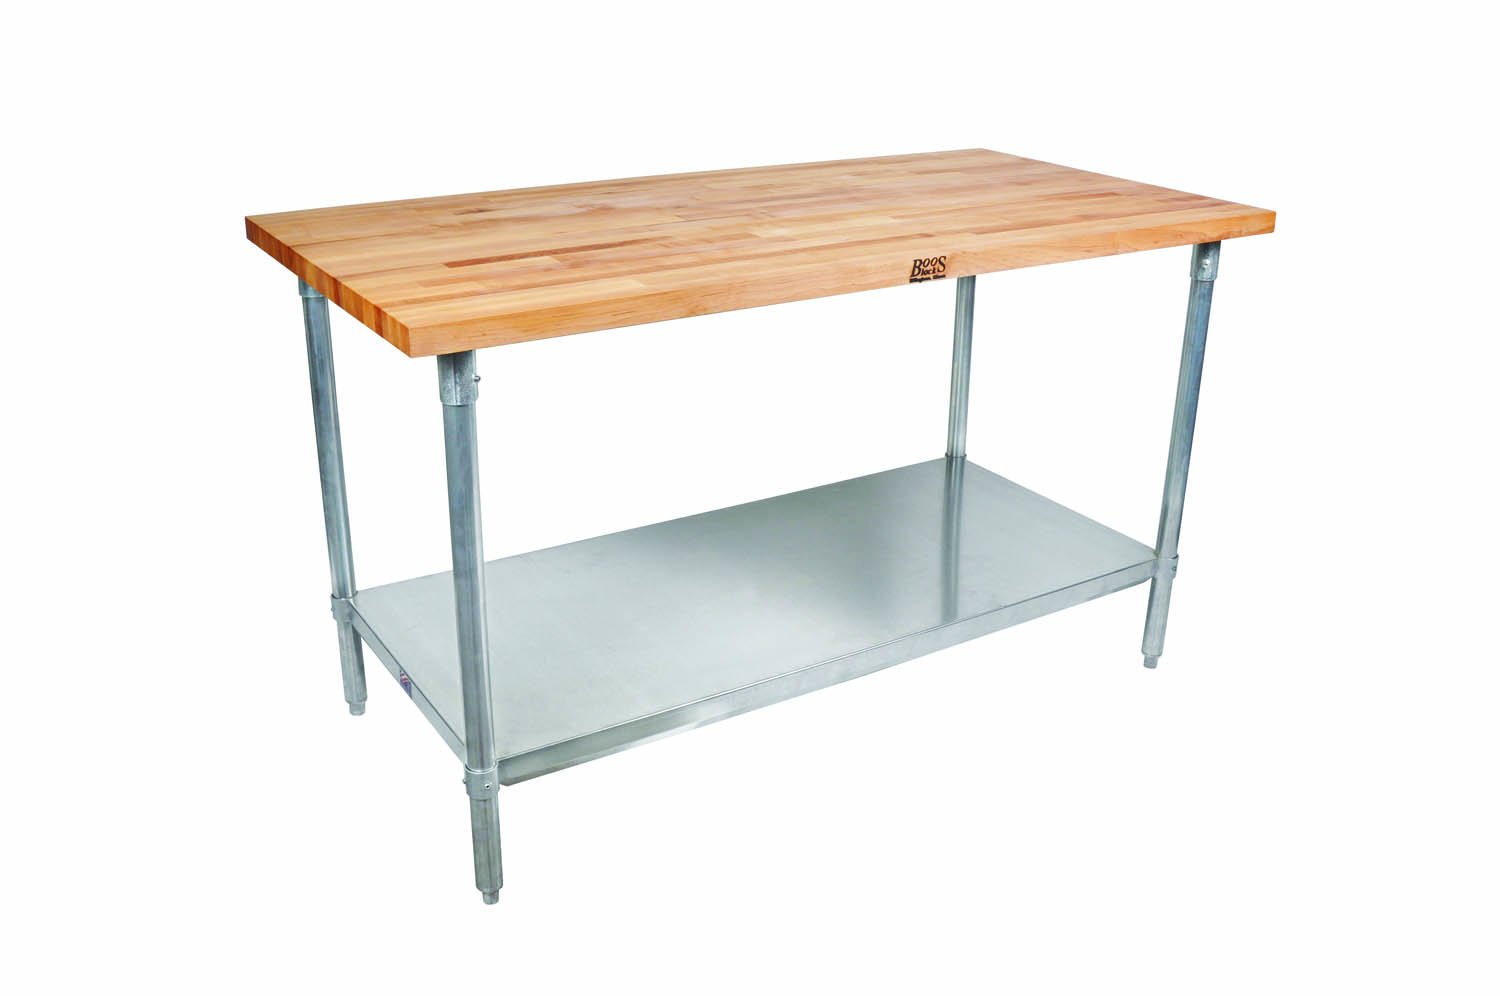 Amazon com  John Boos JNS01 Maple Top Work Table with Galvanized Base and  Shelf  36  x 24  x 1 1 2   Industrial   Scientific. Amazon com  John Boos JNS01 Maple Top Work Table with Galvanized